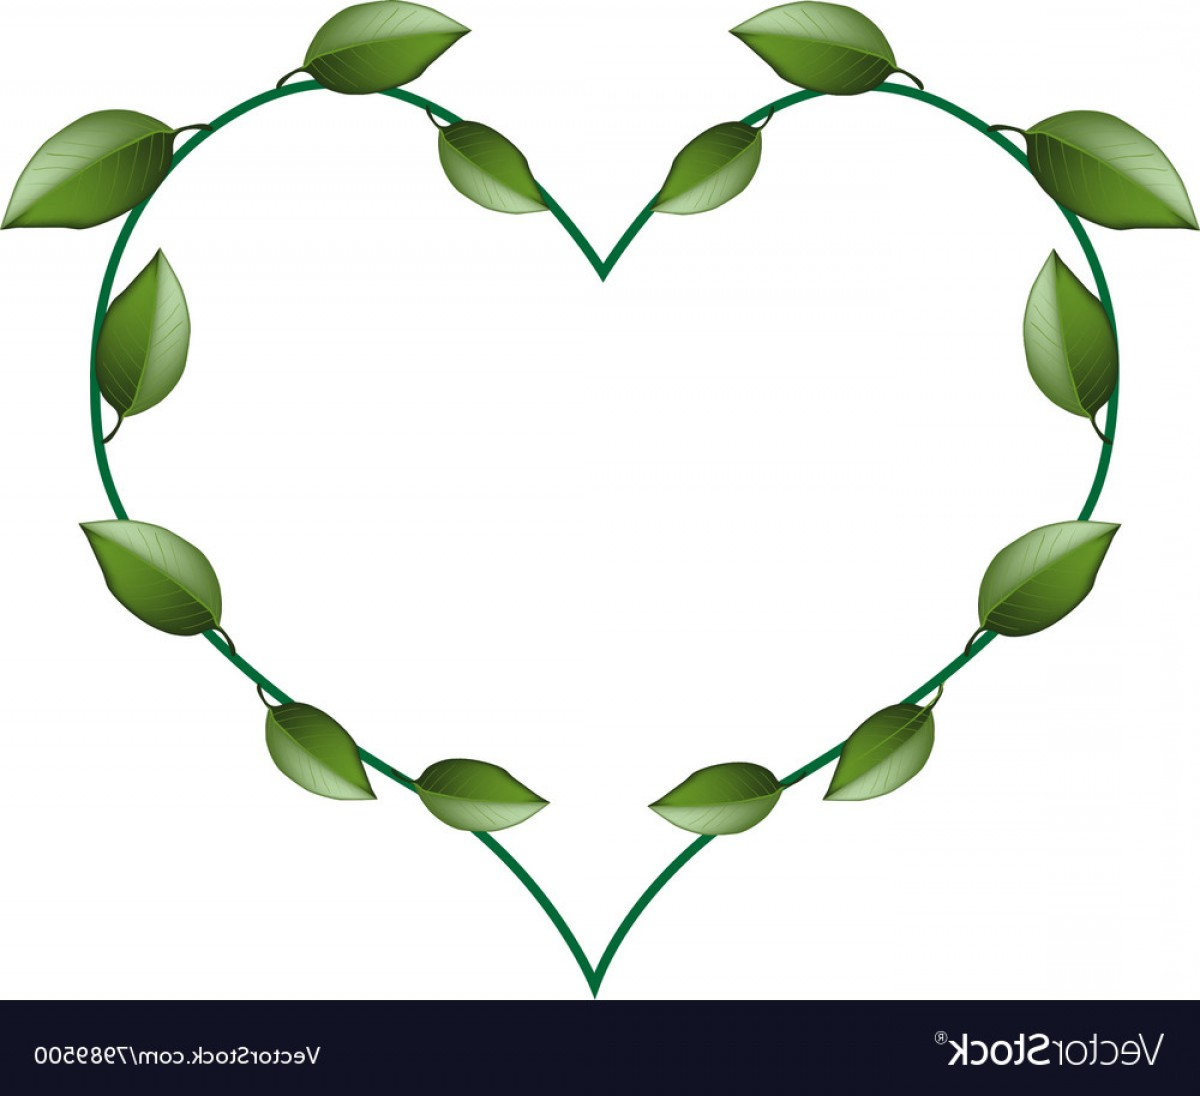 Green Vine Vector: Fresh Green Vine Leaves In A Beautiful Heart Shape Vector